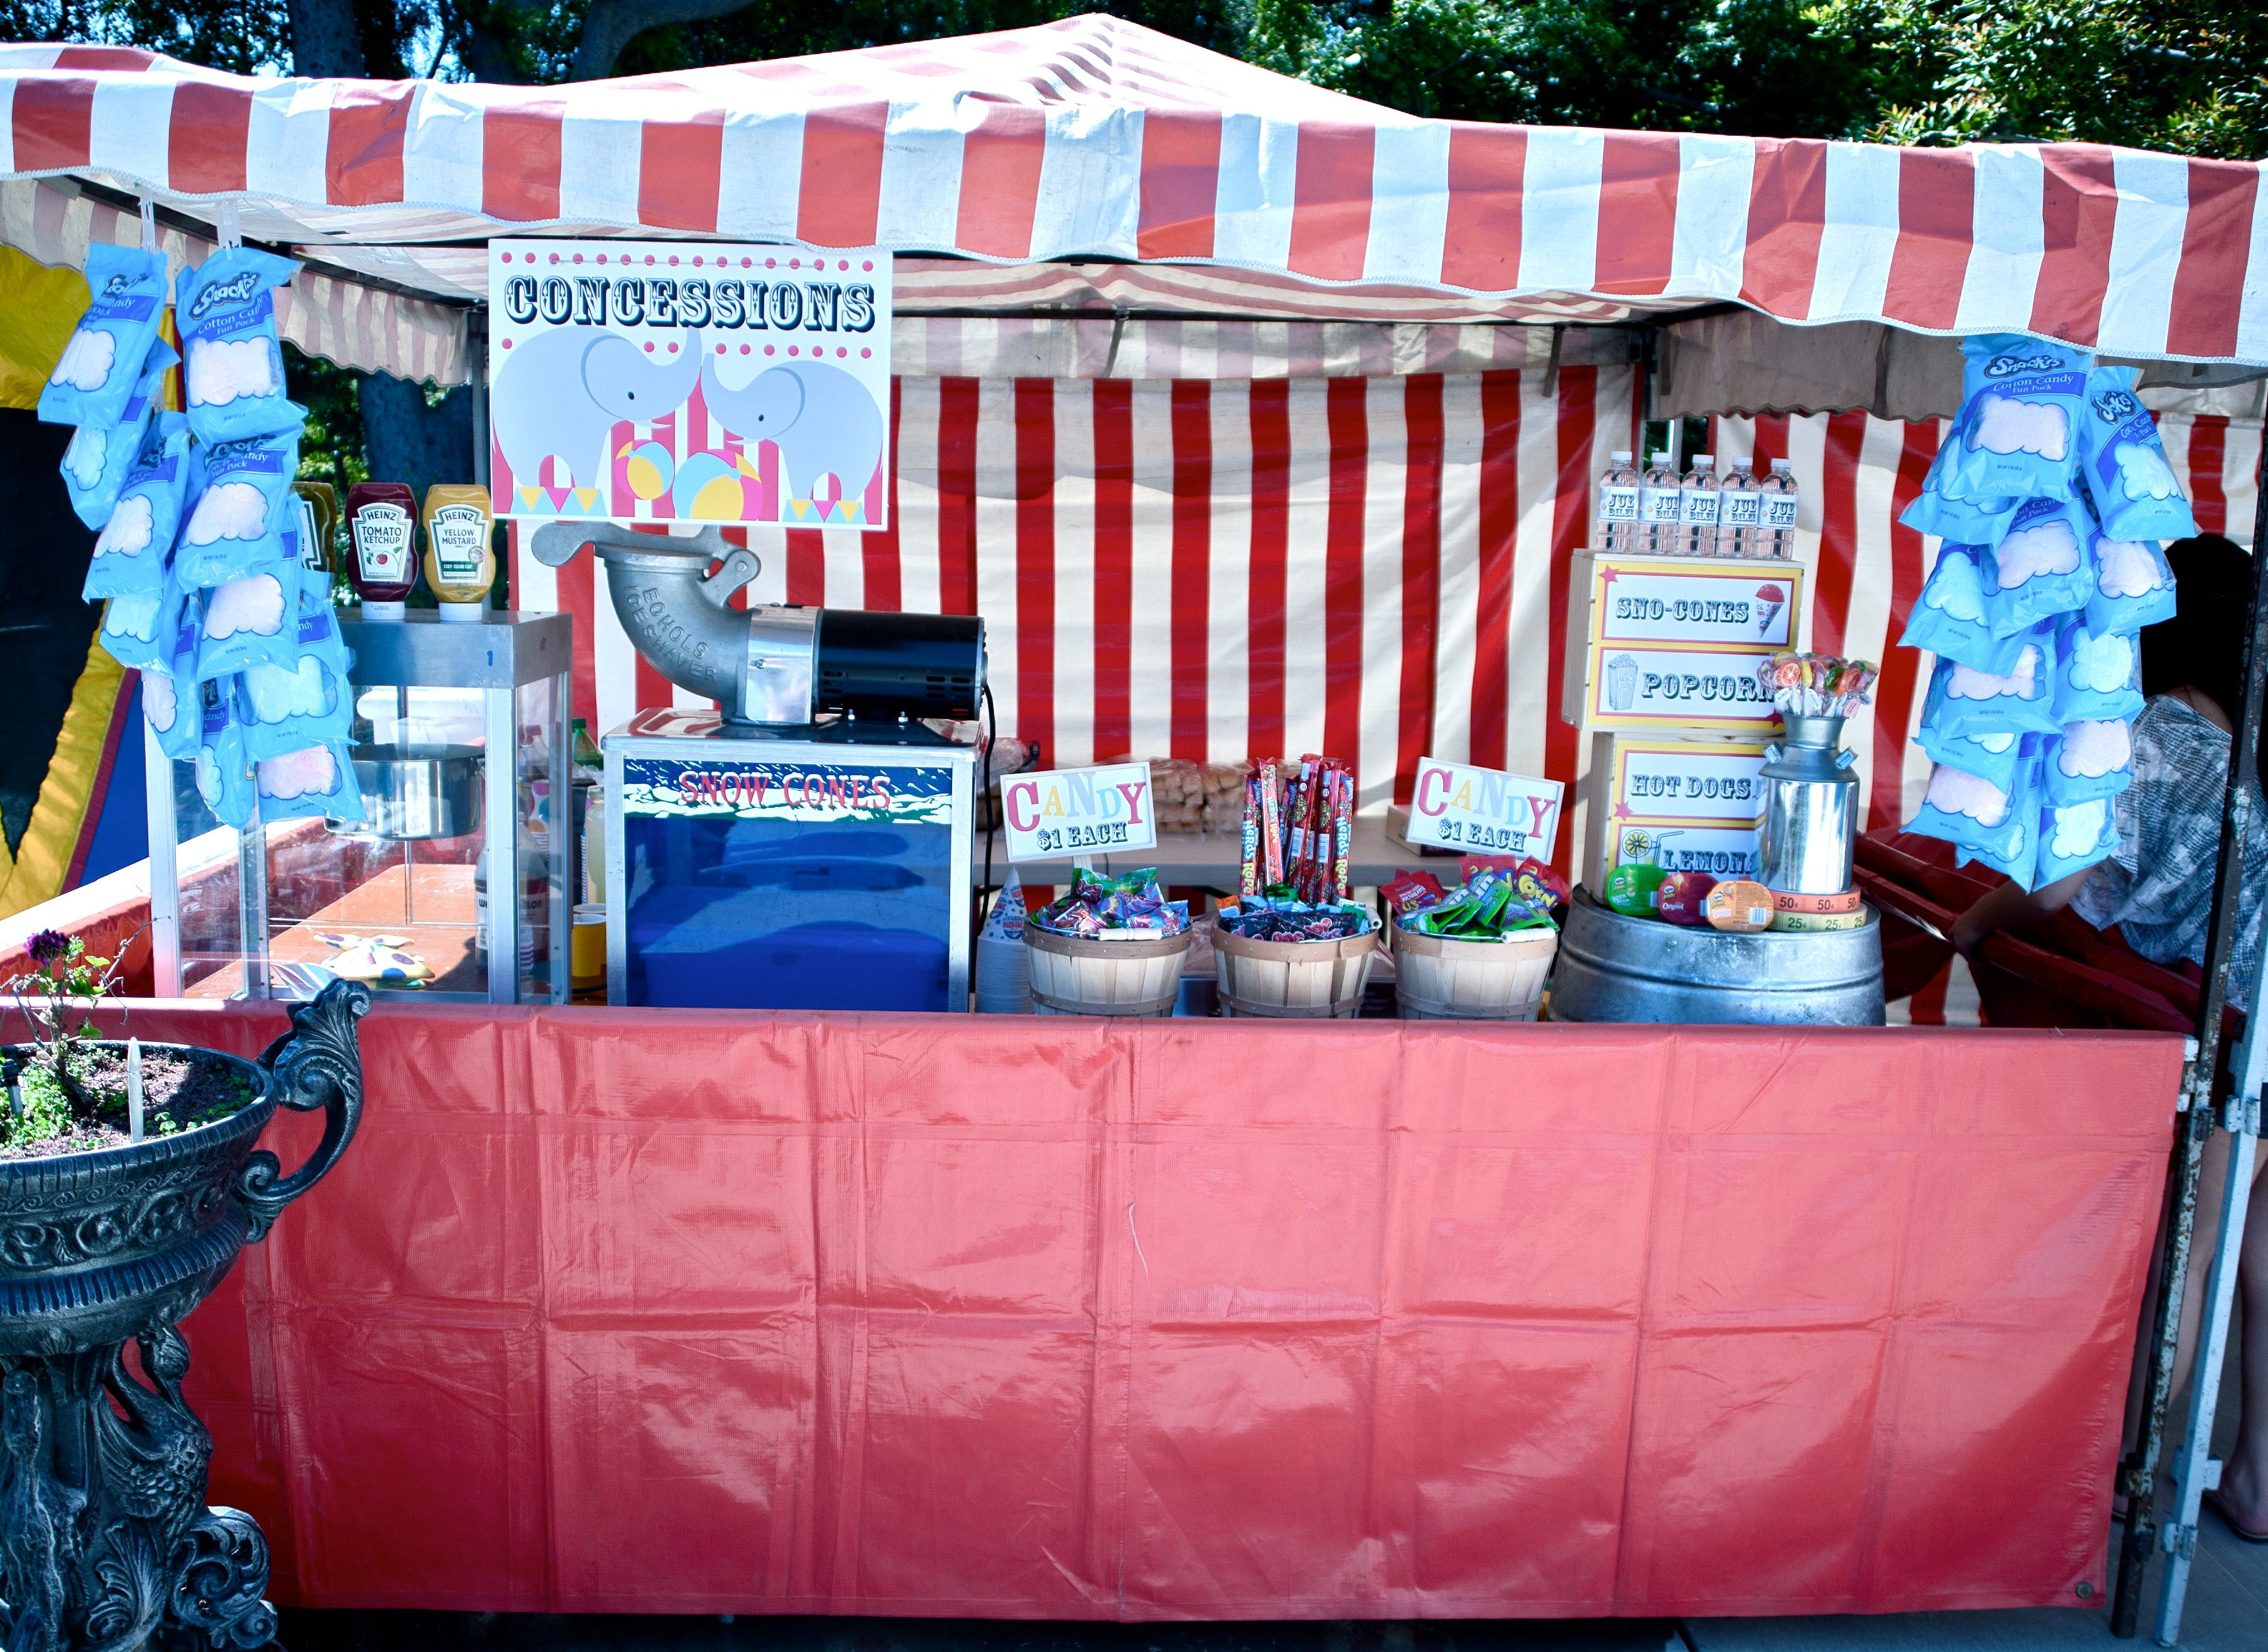 DIY Concession Stand | Carnival Party | Pinterest | Carnival parties ...